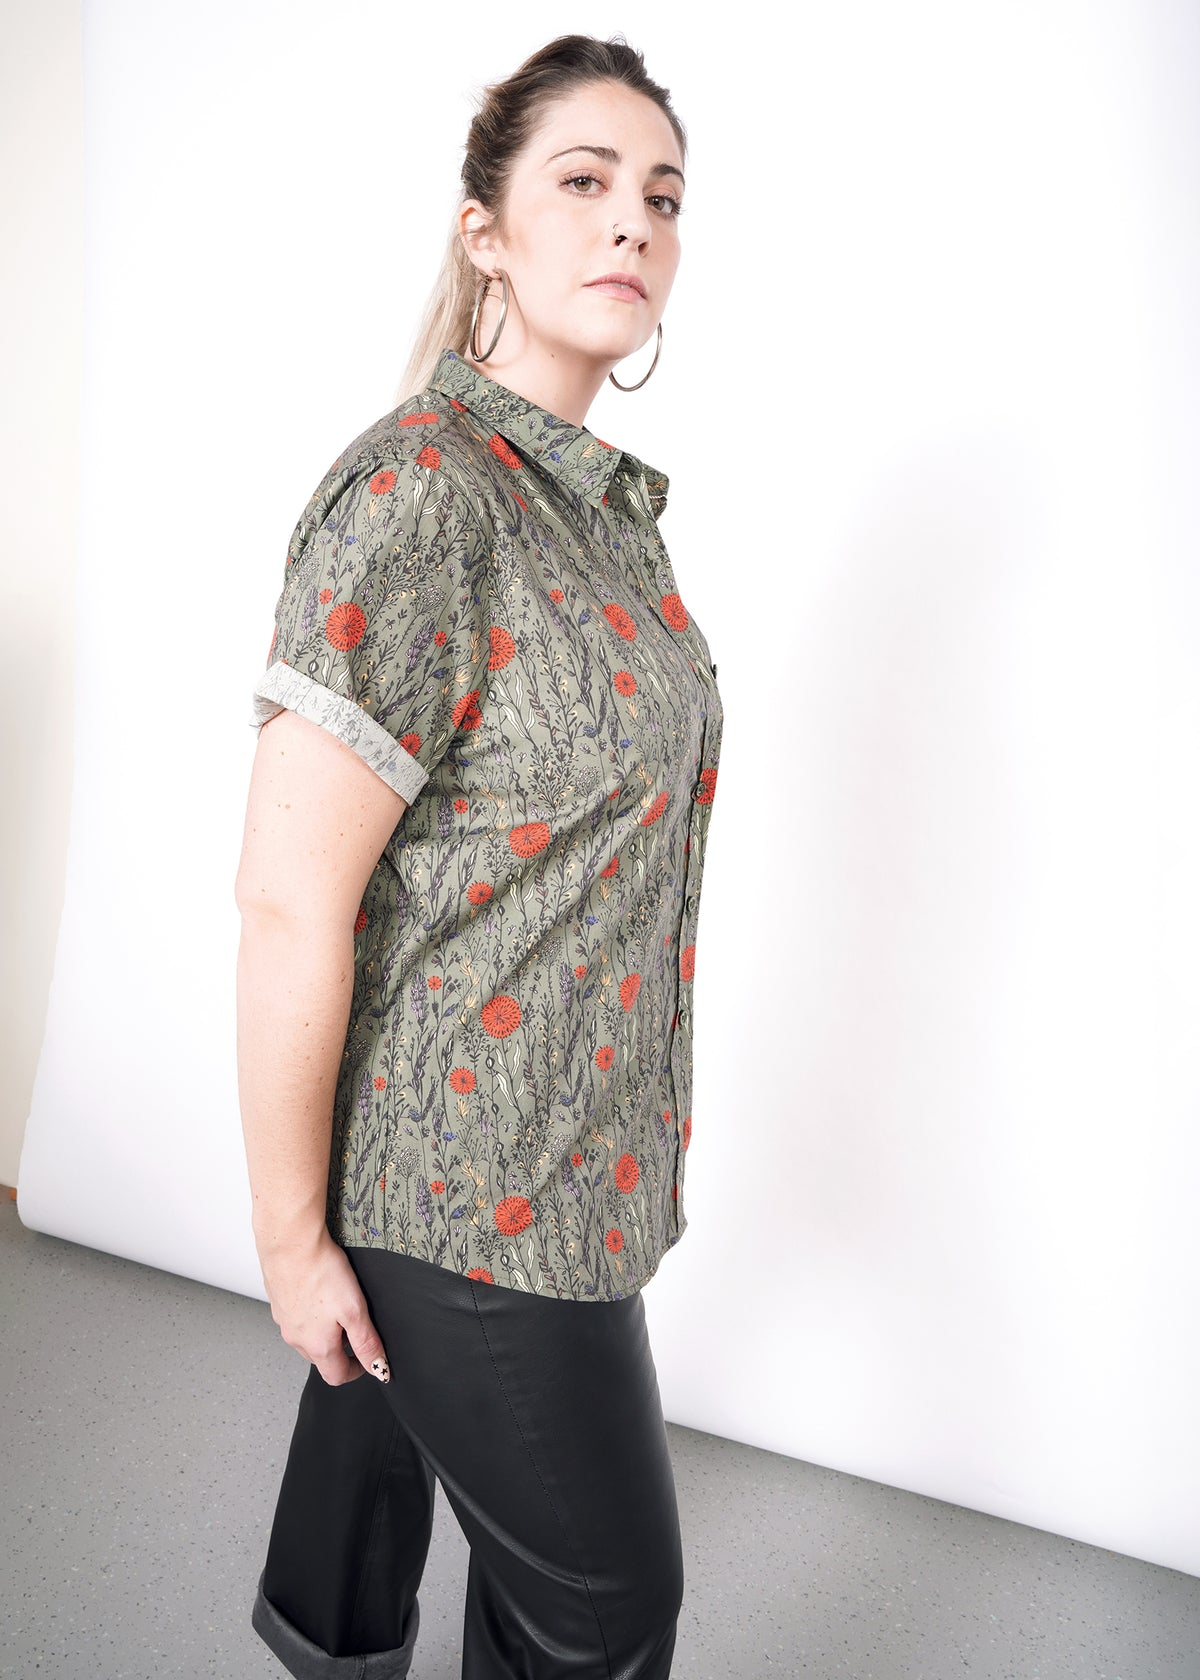 Model wearing botanical all over printed short sleeved button up shirt in size XL, with the sleeves cuffed